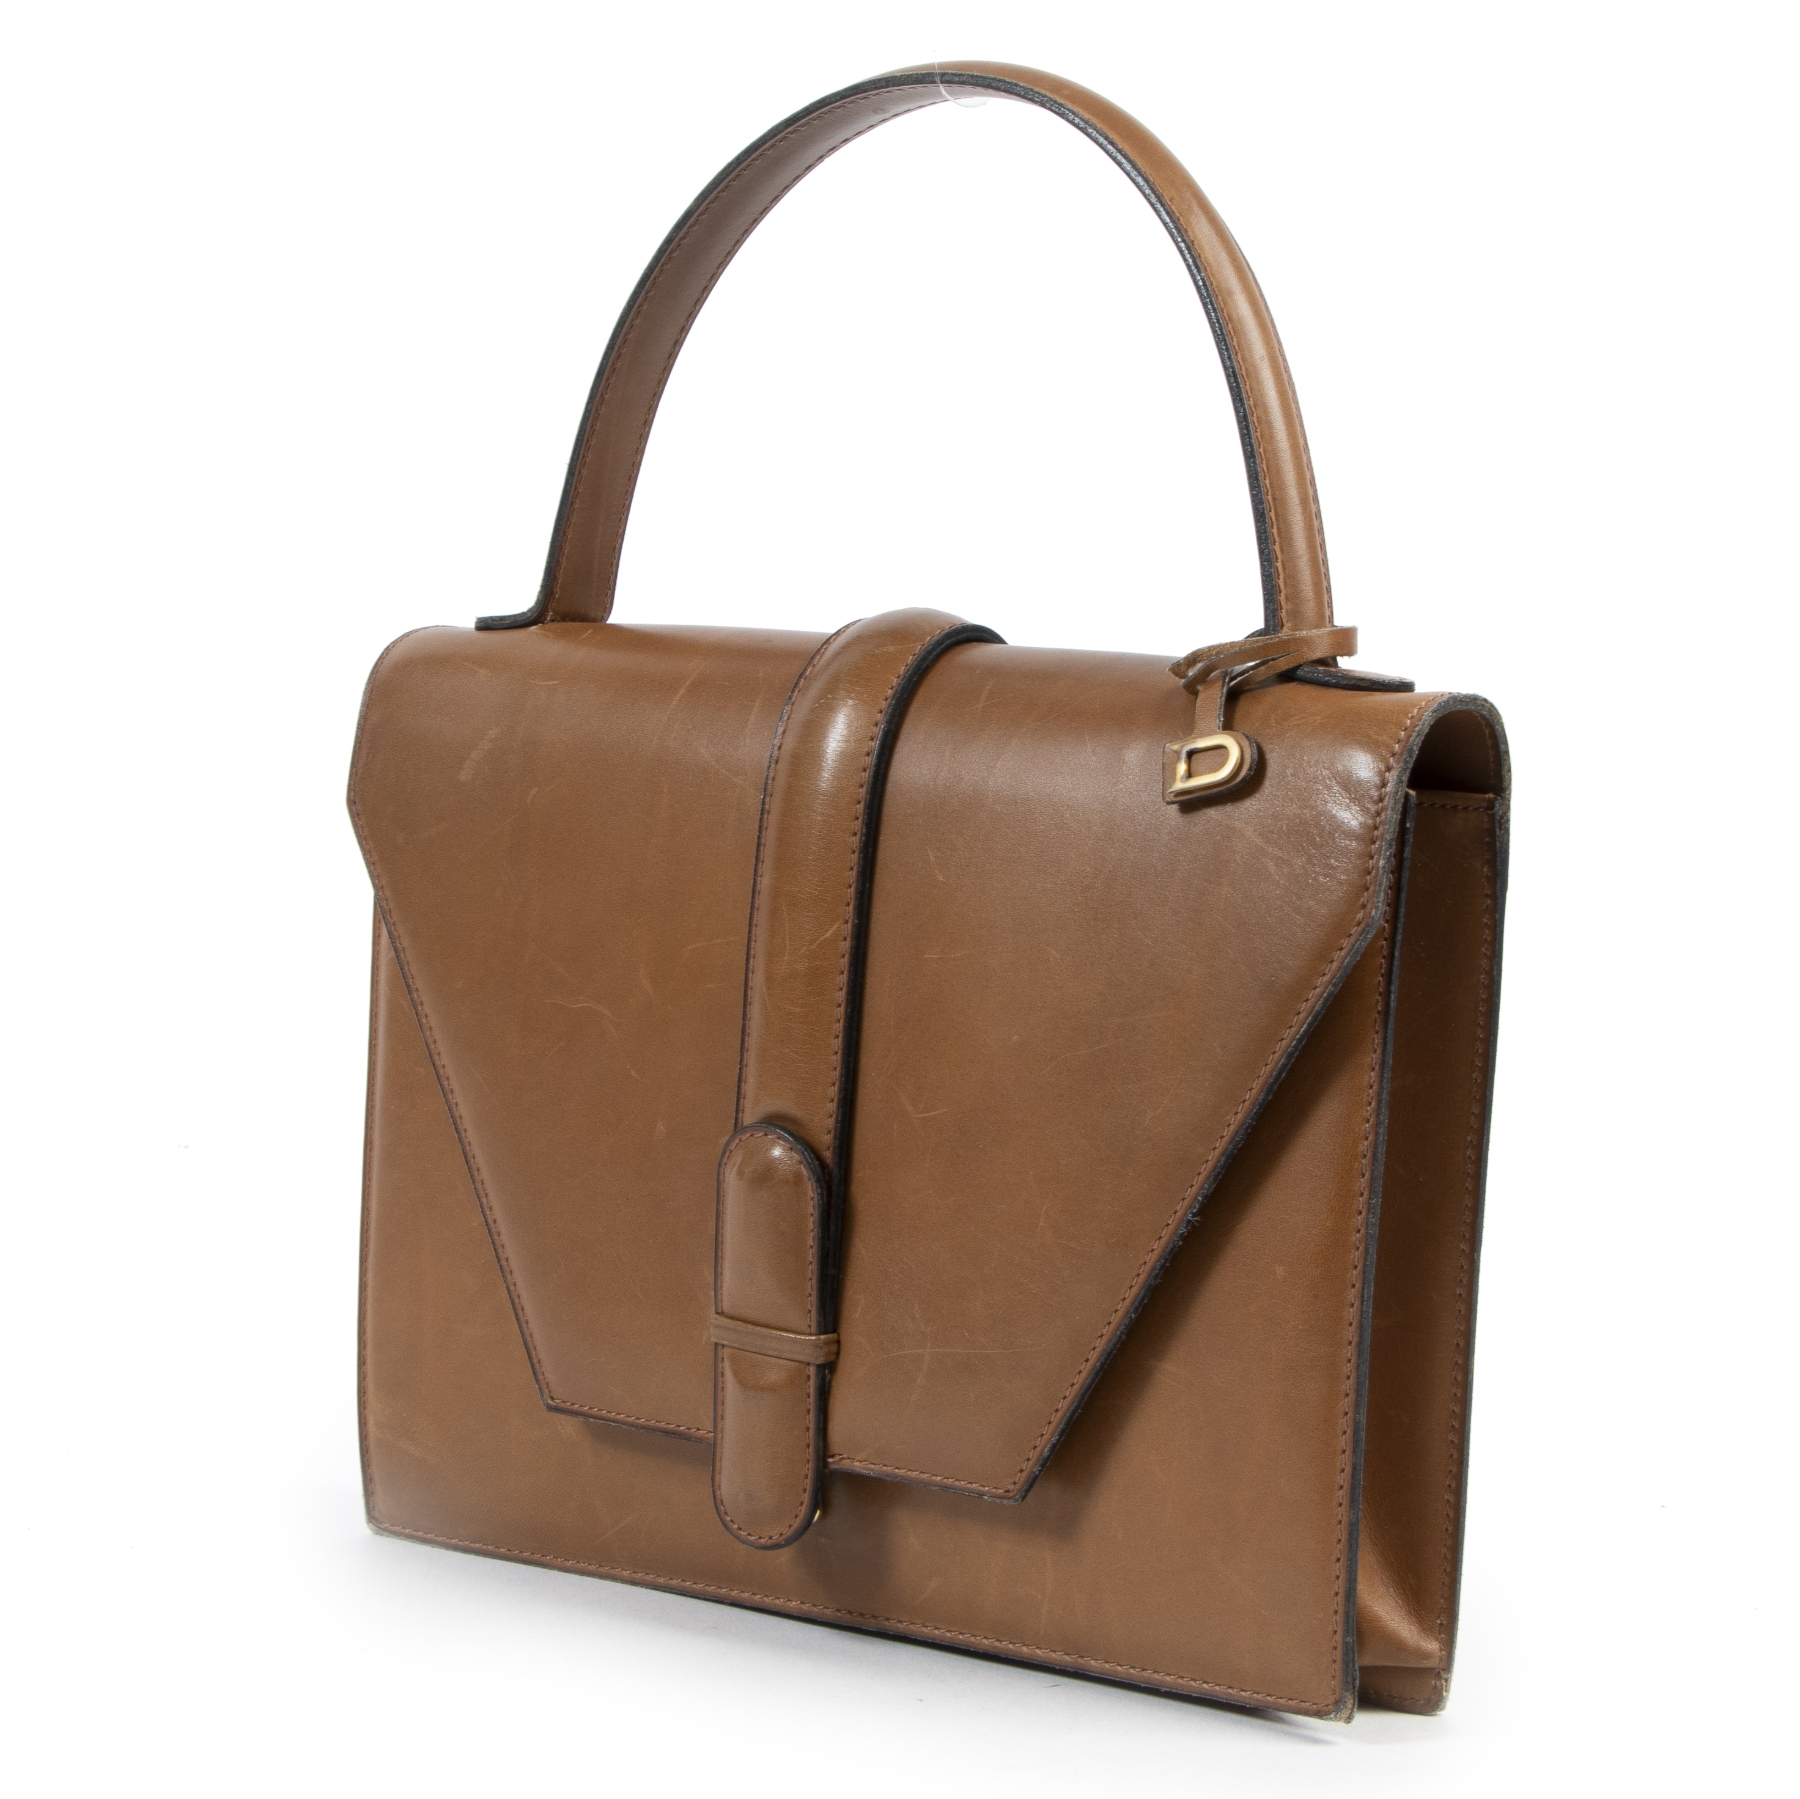 Buy authentic second hand Delvaux handbags with right price at LabelLOV.